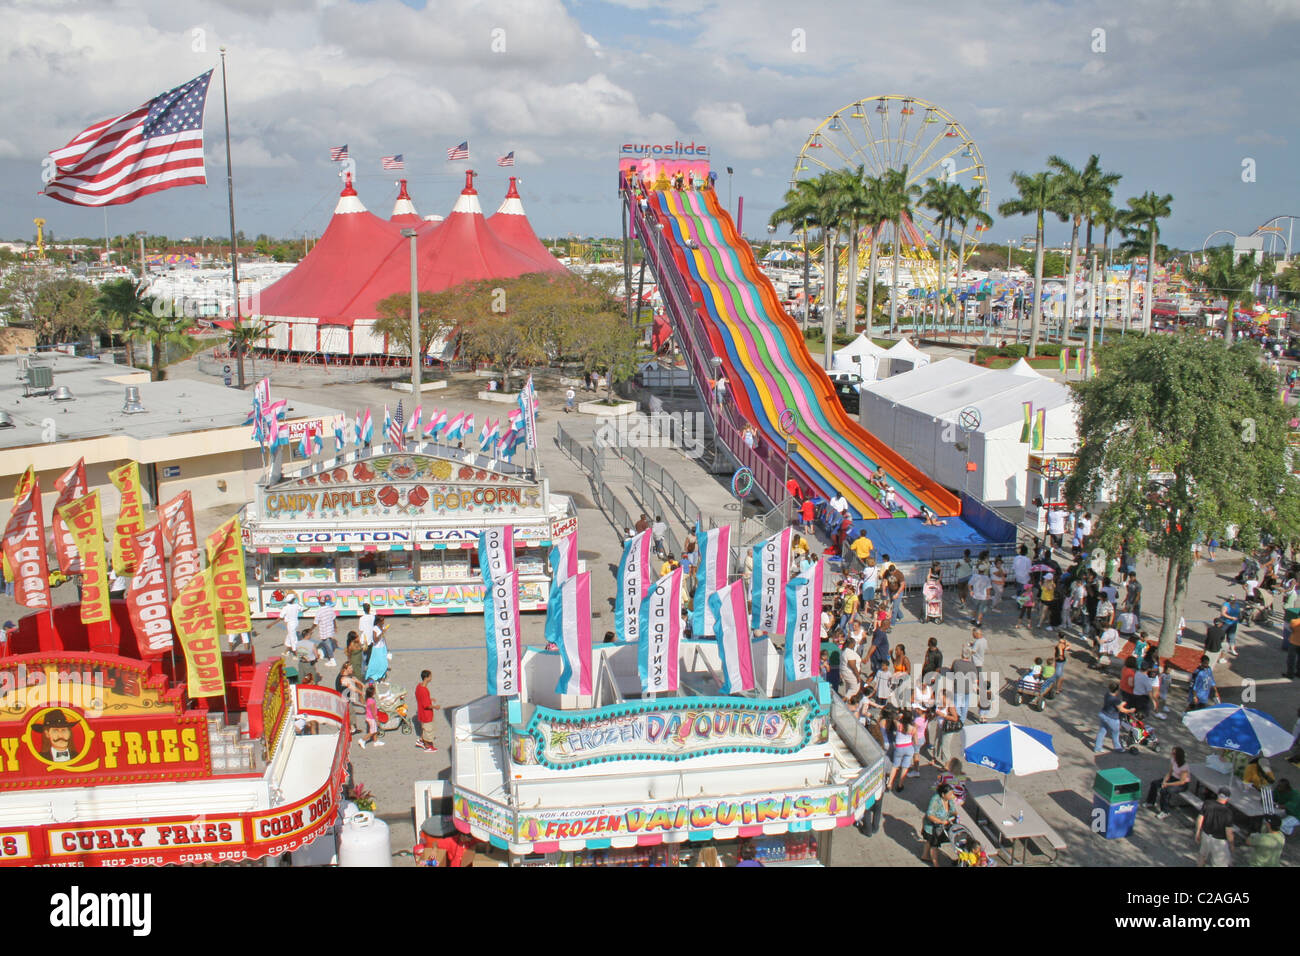 Elevated view ethnic mix people giant slide at Miami Dade County Fair Miami Florida - Stock Image